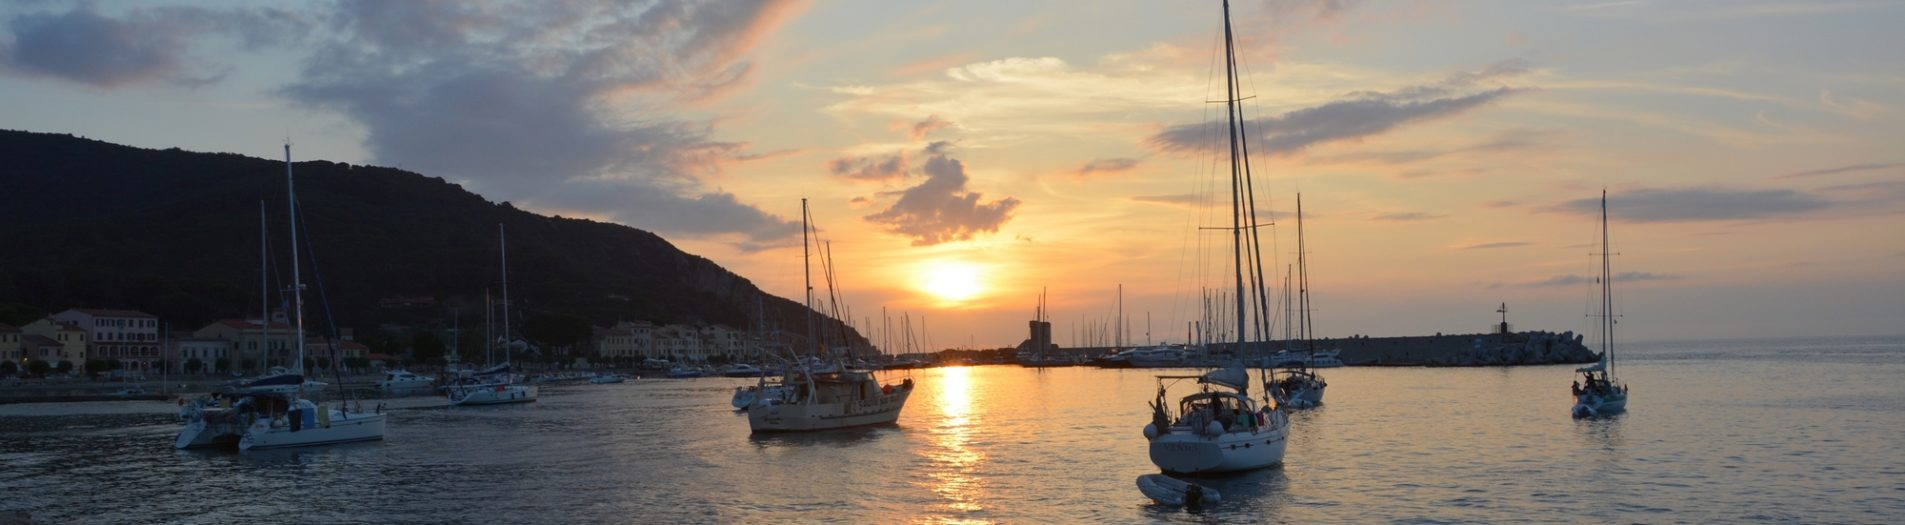 Breathtaking sunsets in Marciana Marina